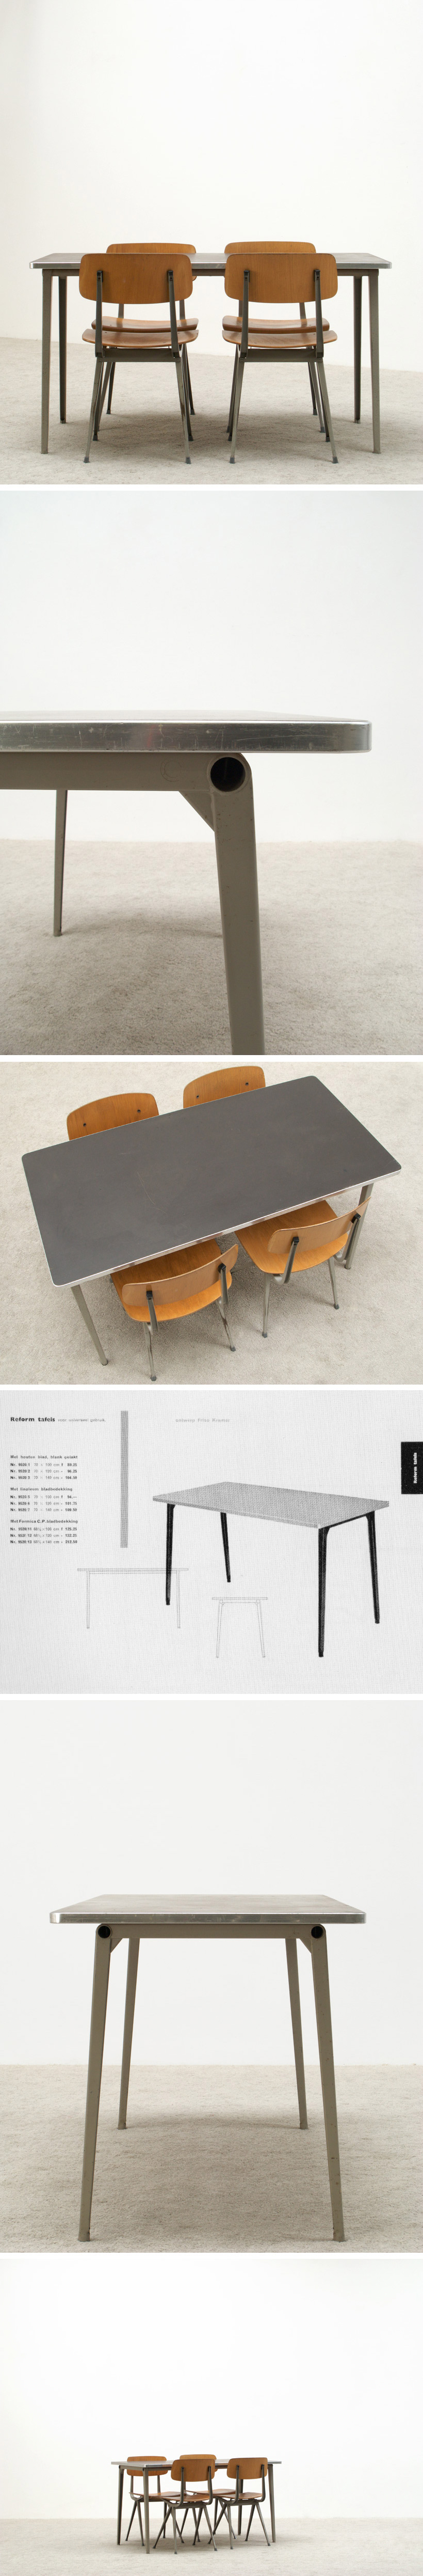 Friso Kramer Industrial Reform table 1955 Large